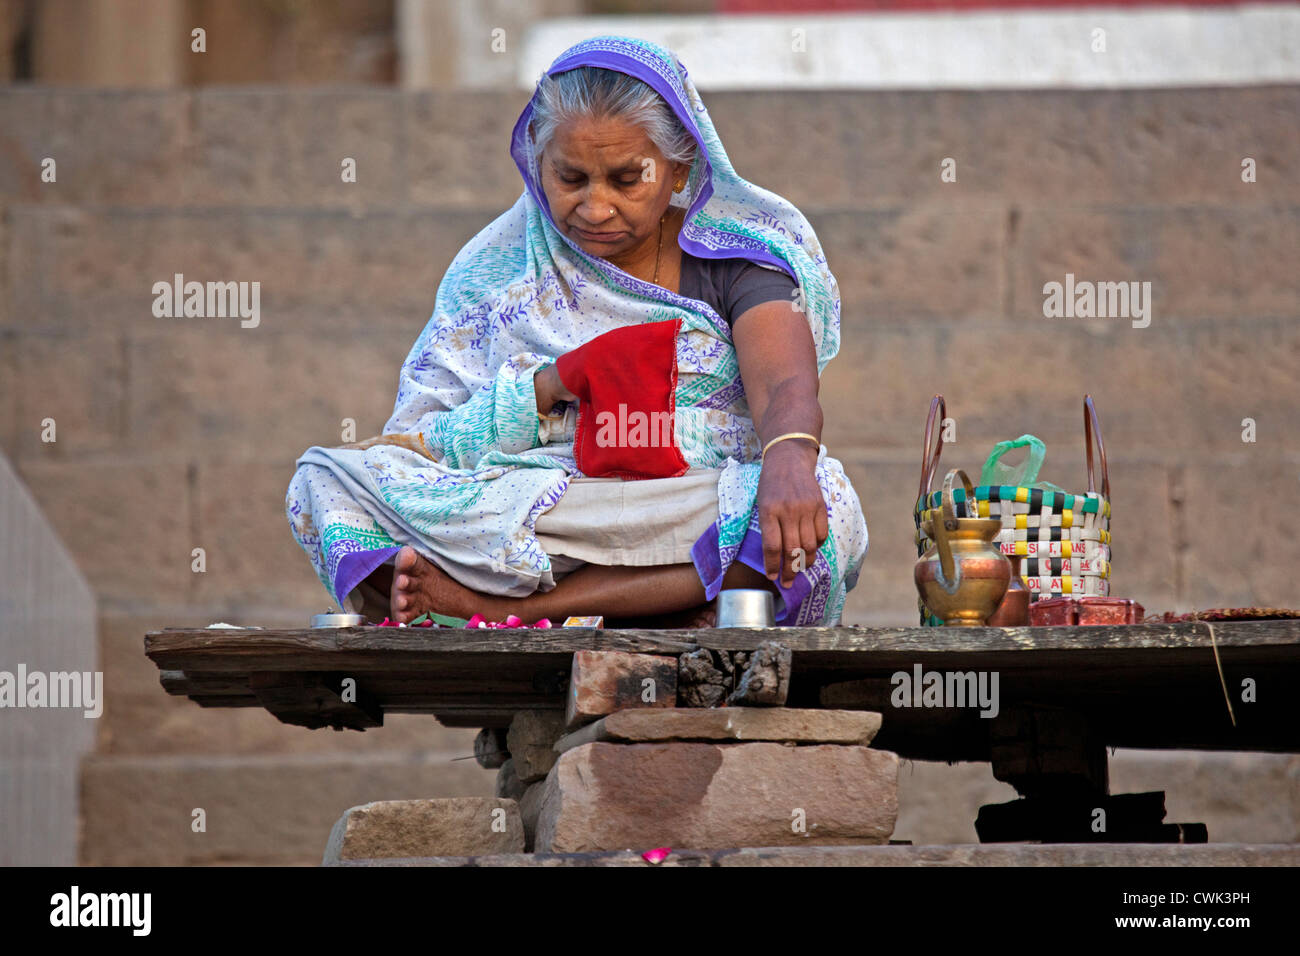 Old Indian woman sitting on ghat and praying near the Ganges river at Varanasi, Uttar Pradesh, India - Stock Image